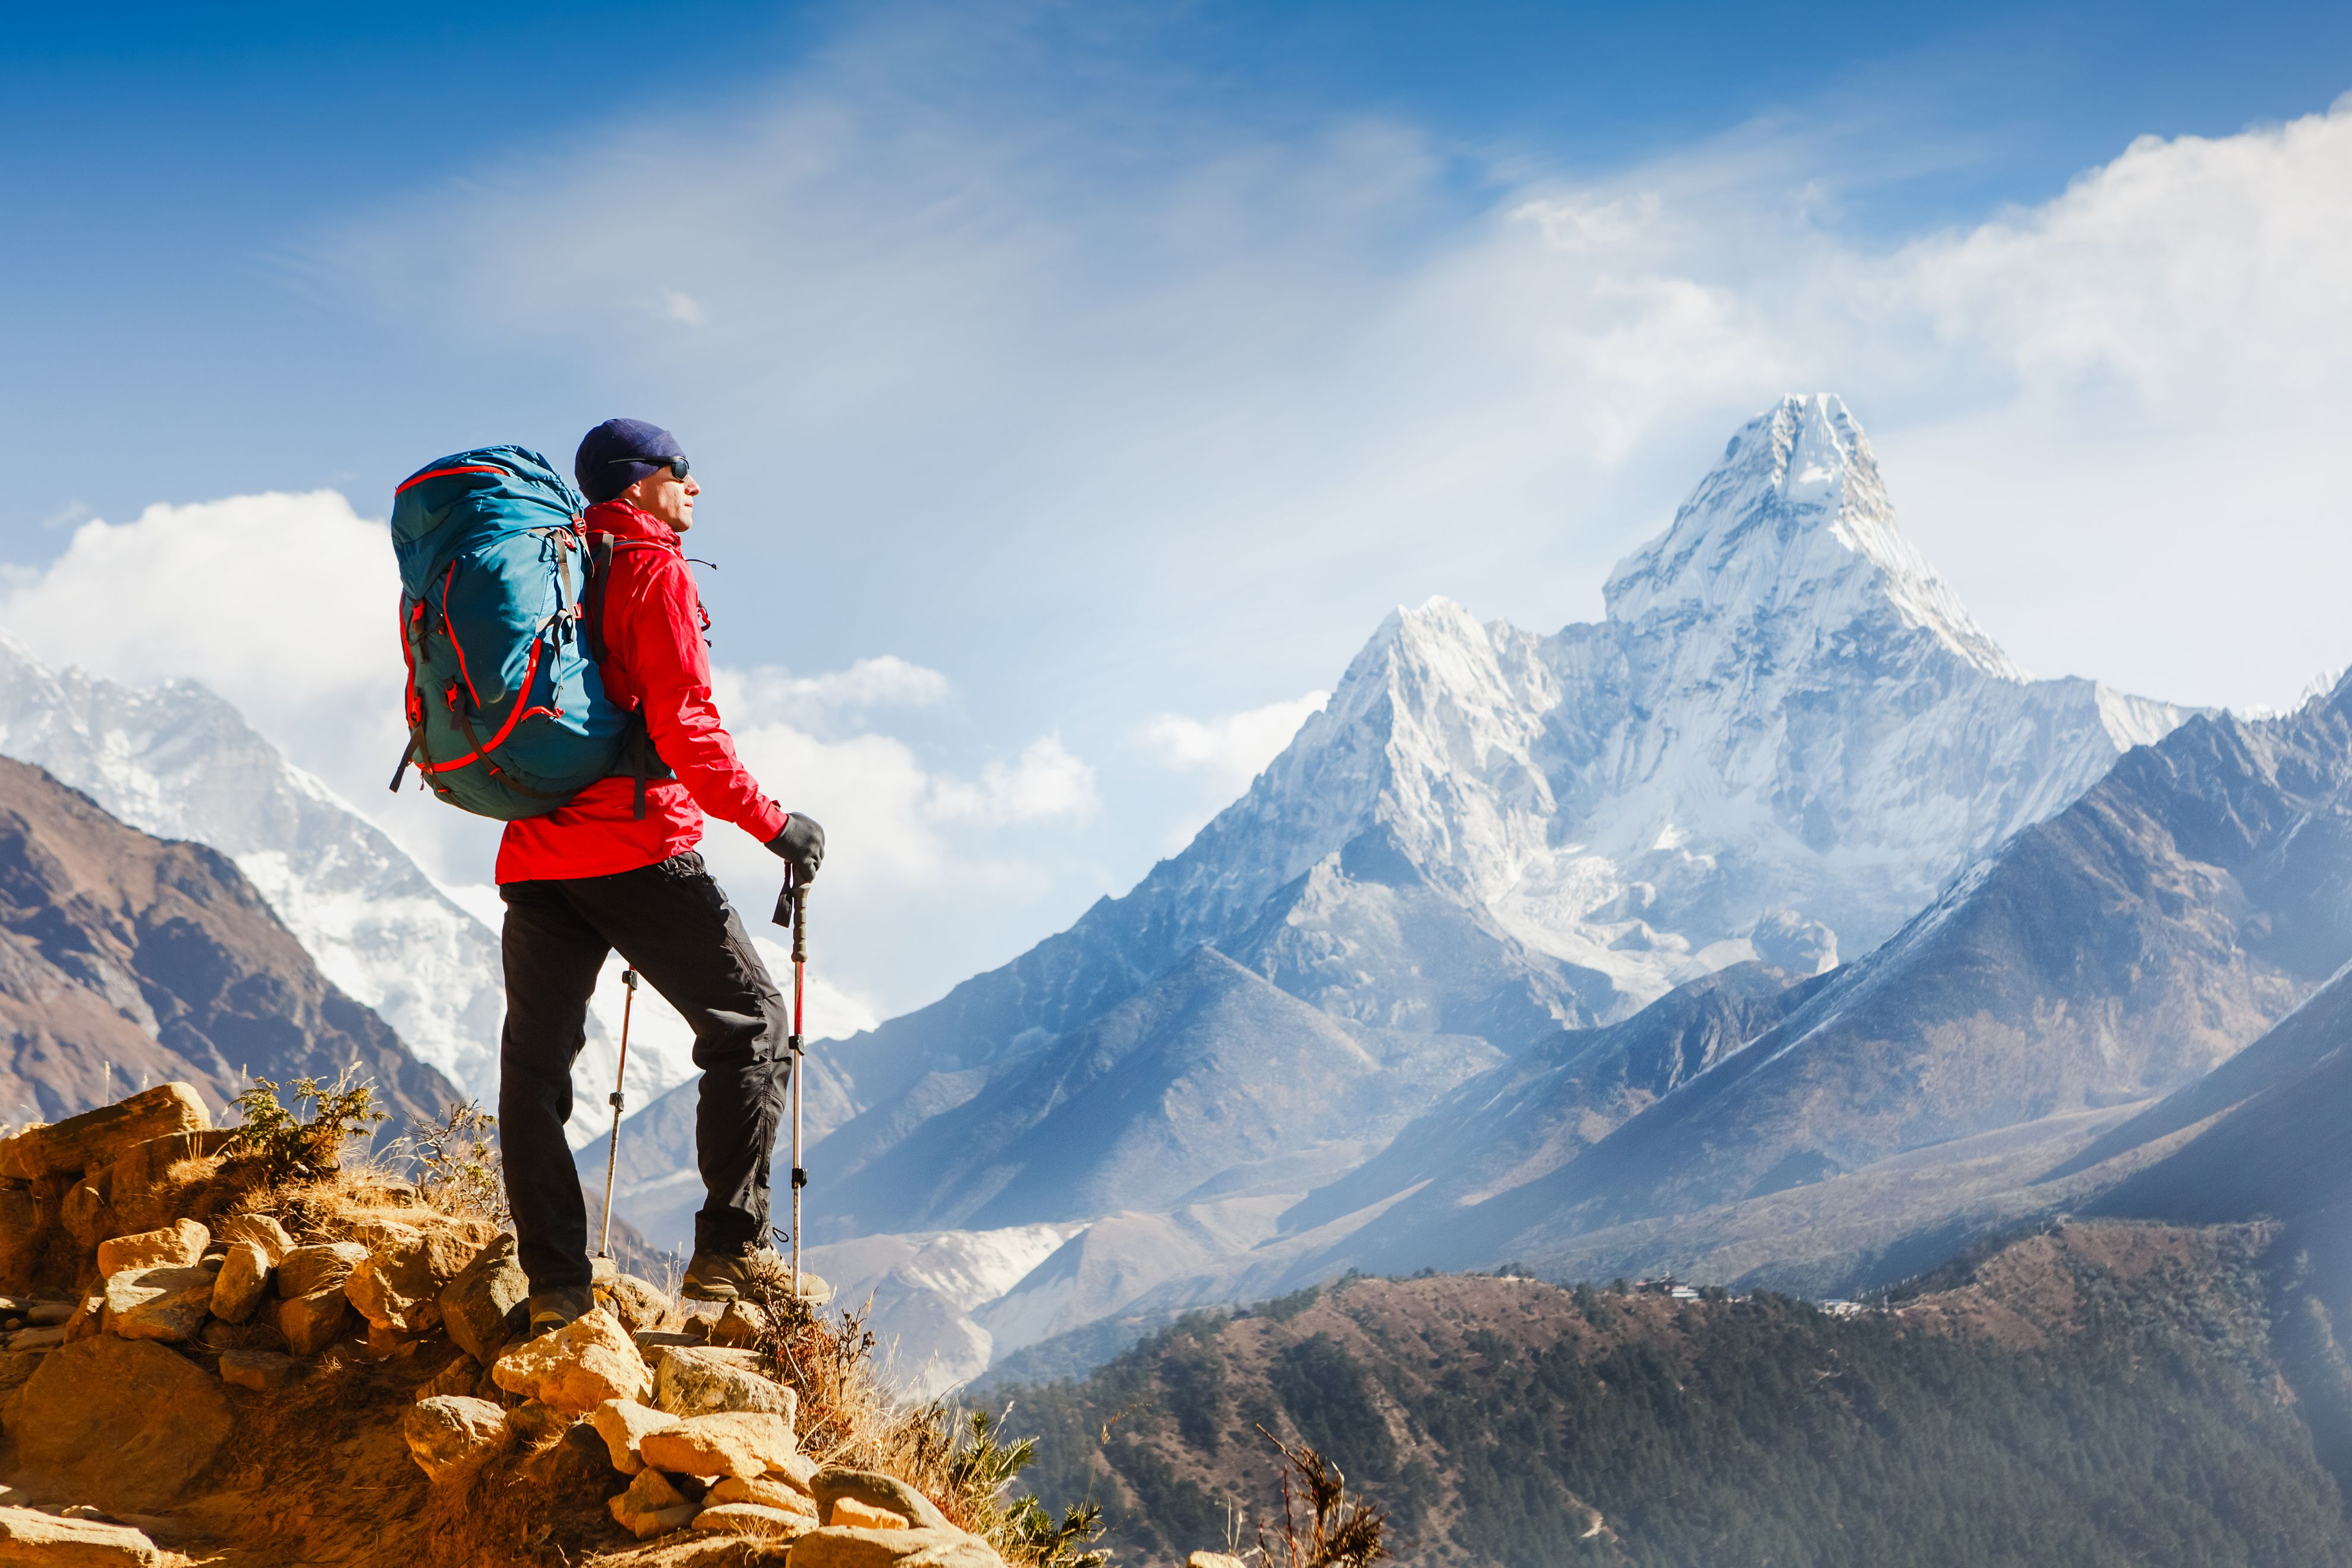 A man looks over a majestic view on top of a mountain.   Source: Shutterstock